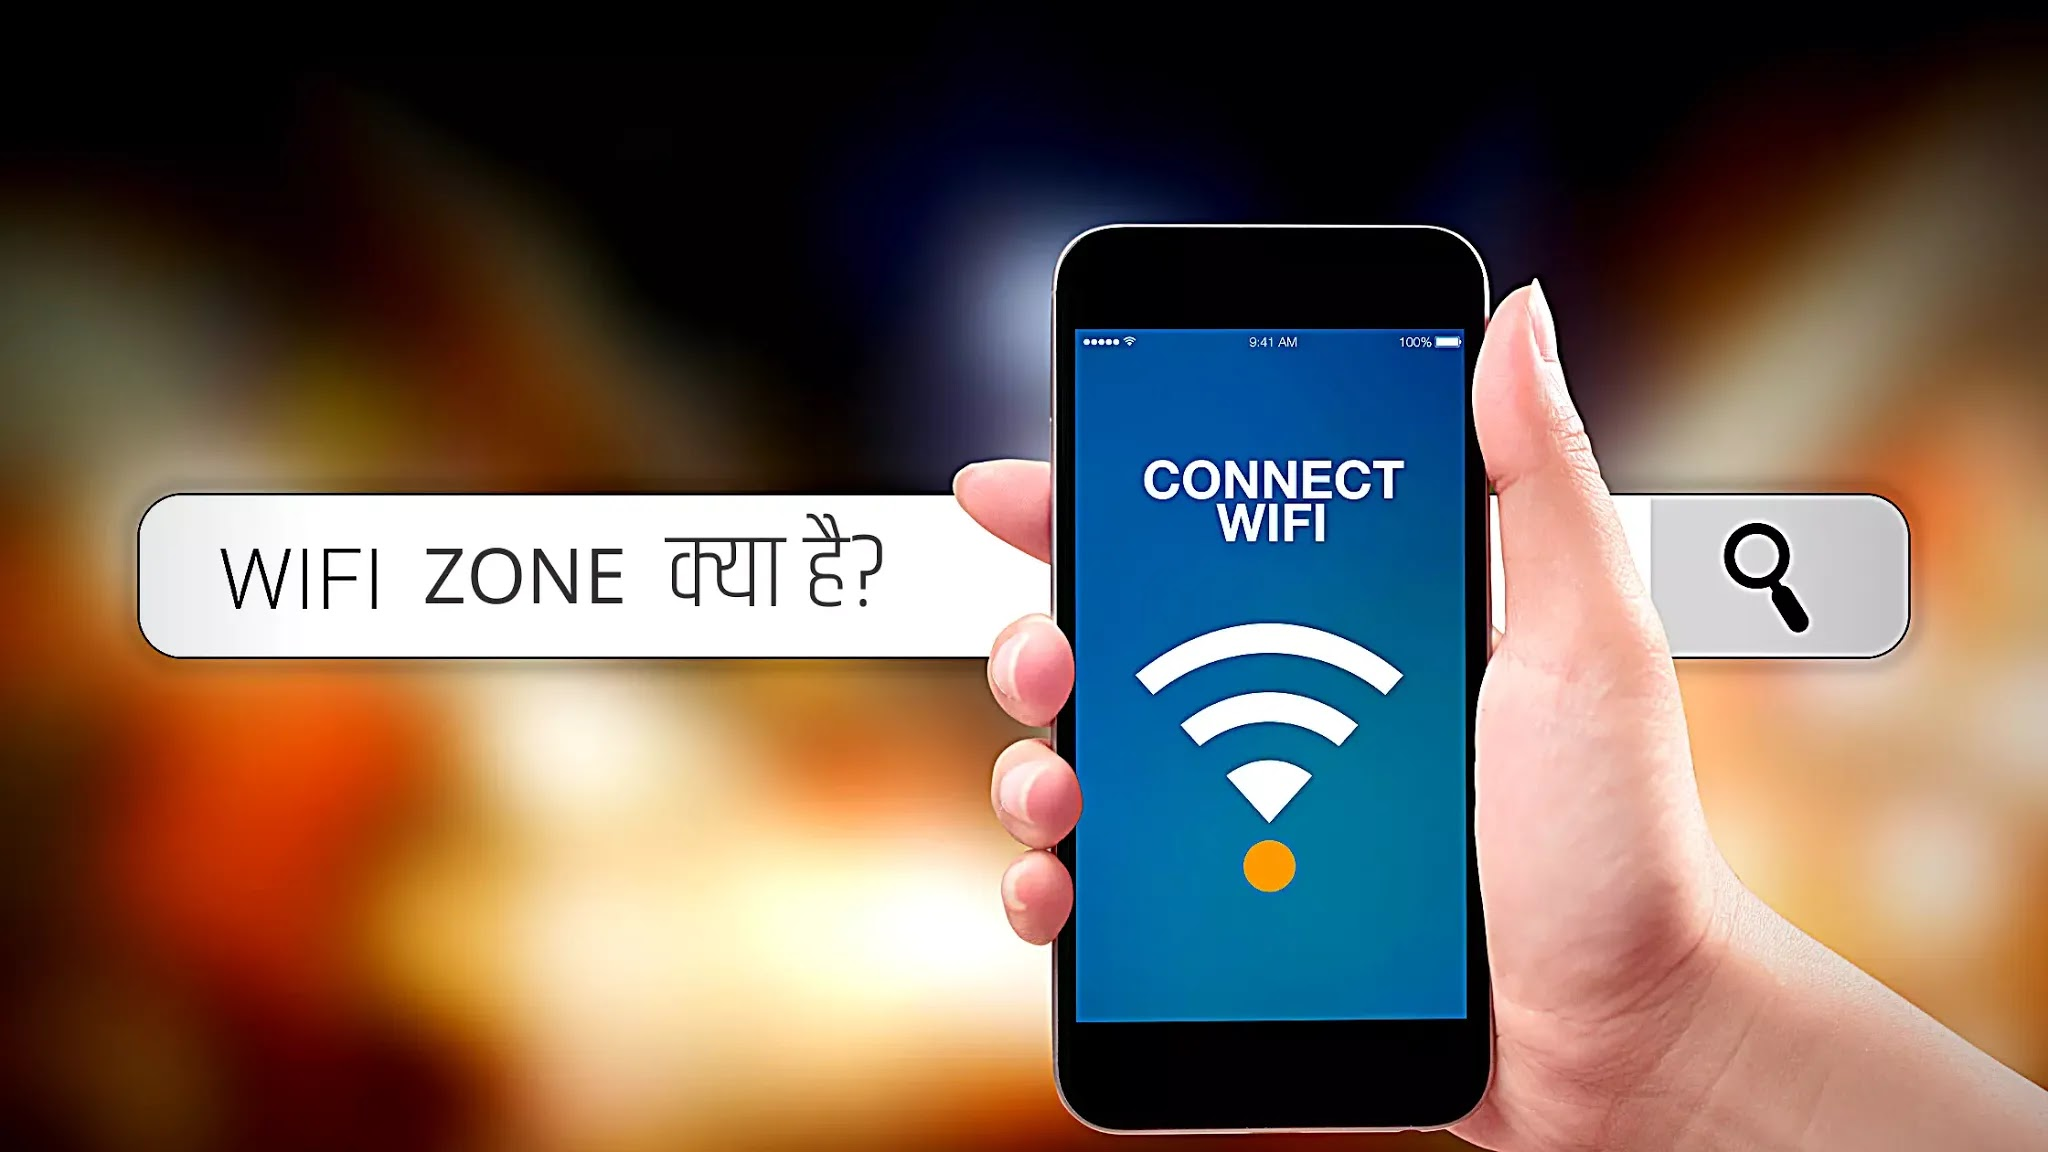 system, data, phone, search, computer, address, range, sharing, definition, access, लोगों, technology, connection, diagram, Hotspot, network, Bluetooth,